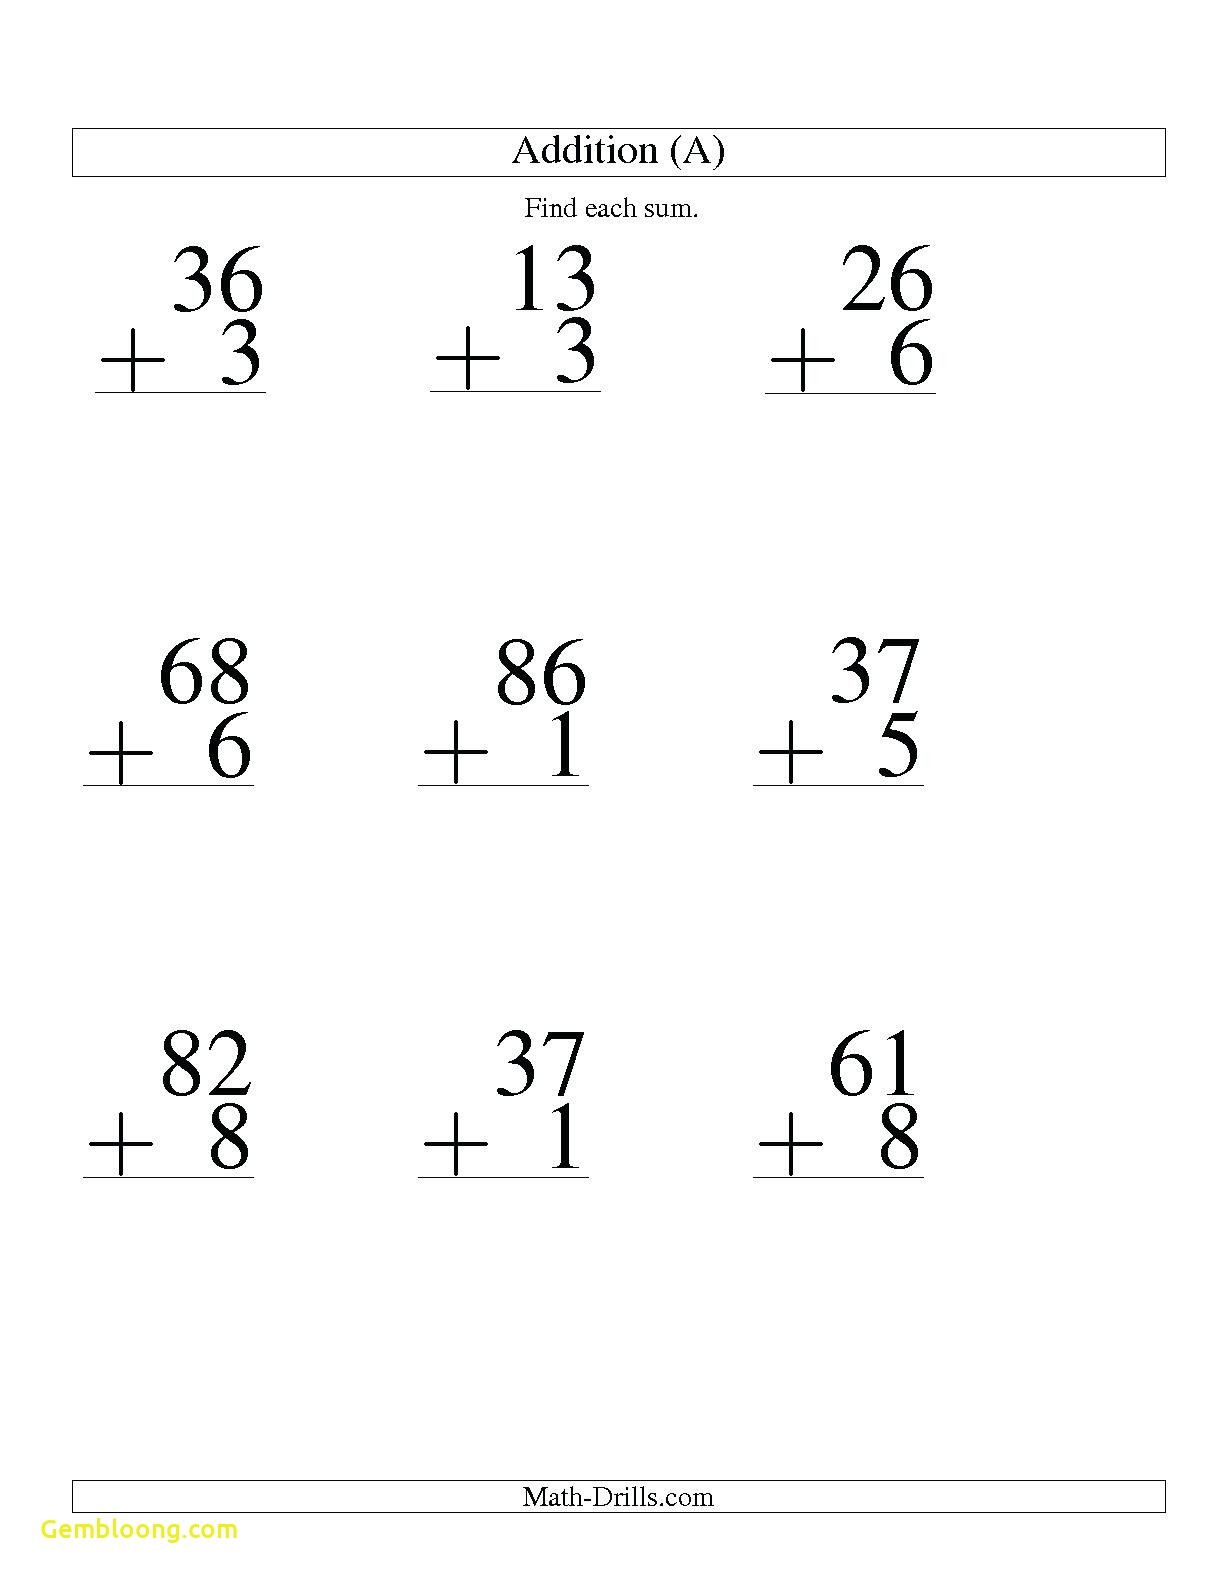 Official Double Digit Addition With Regrouping Worksheets